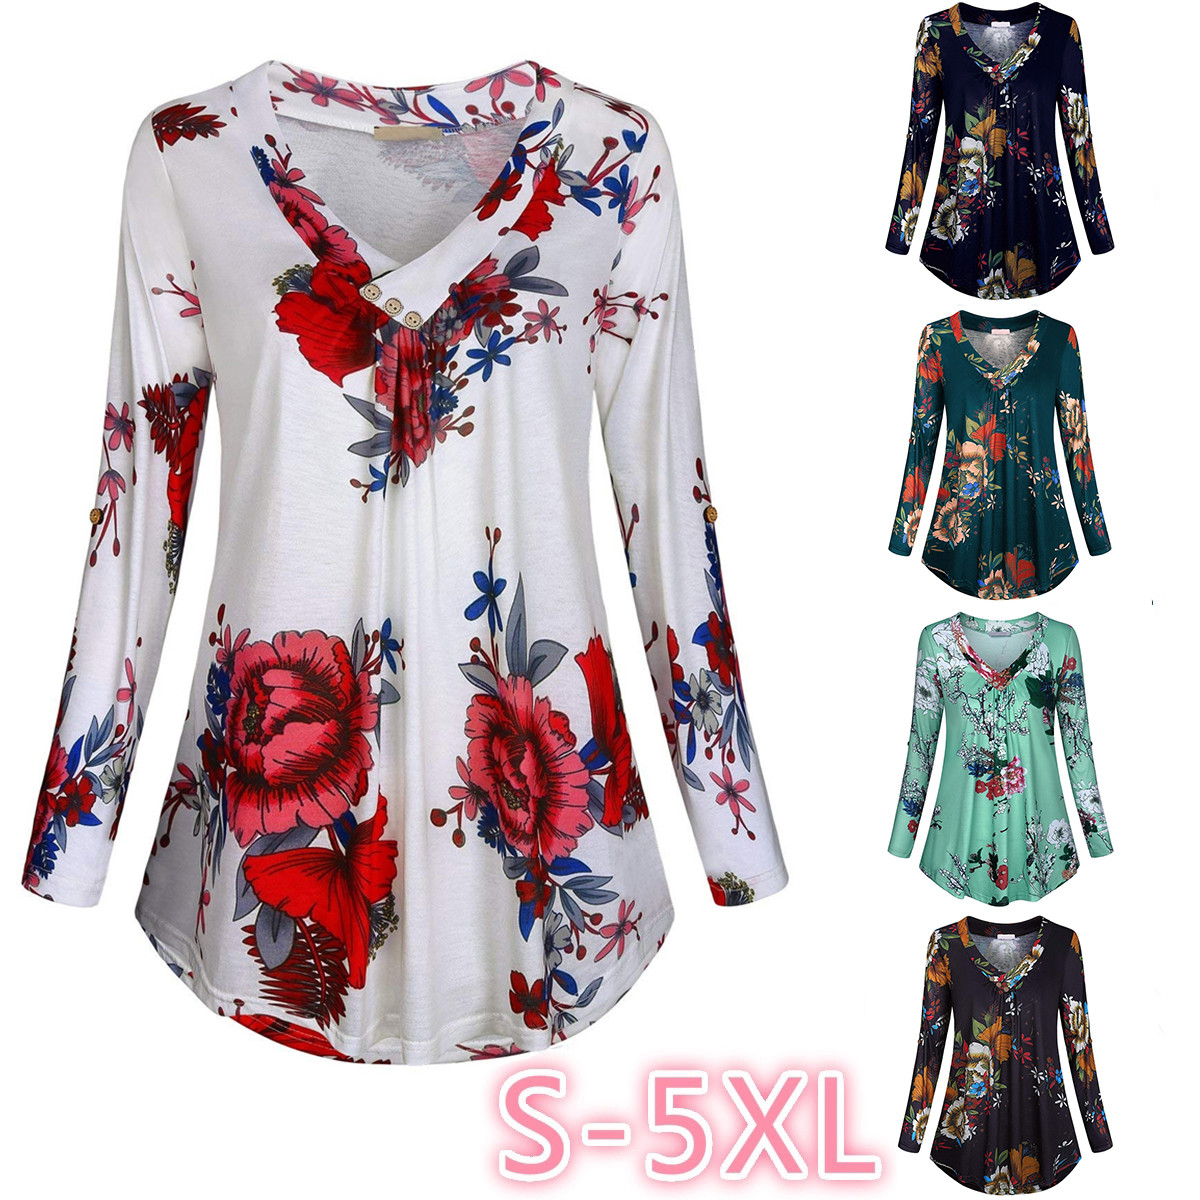 Floral Print V-neck   Blouses   And Tops With Button Big Size Women Clothing 5XL Plus Size Women Tunic   Shirt   2019 Autumn